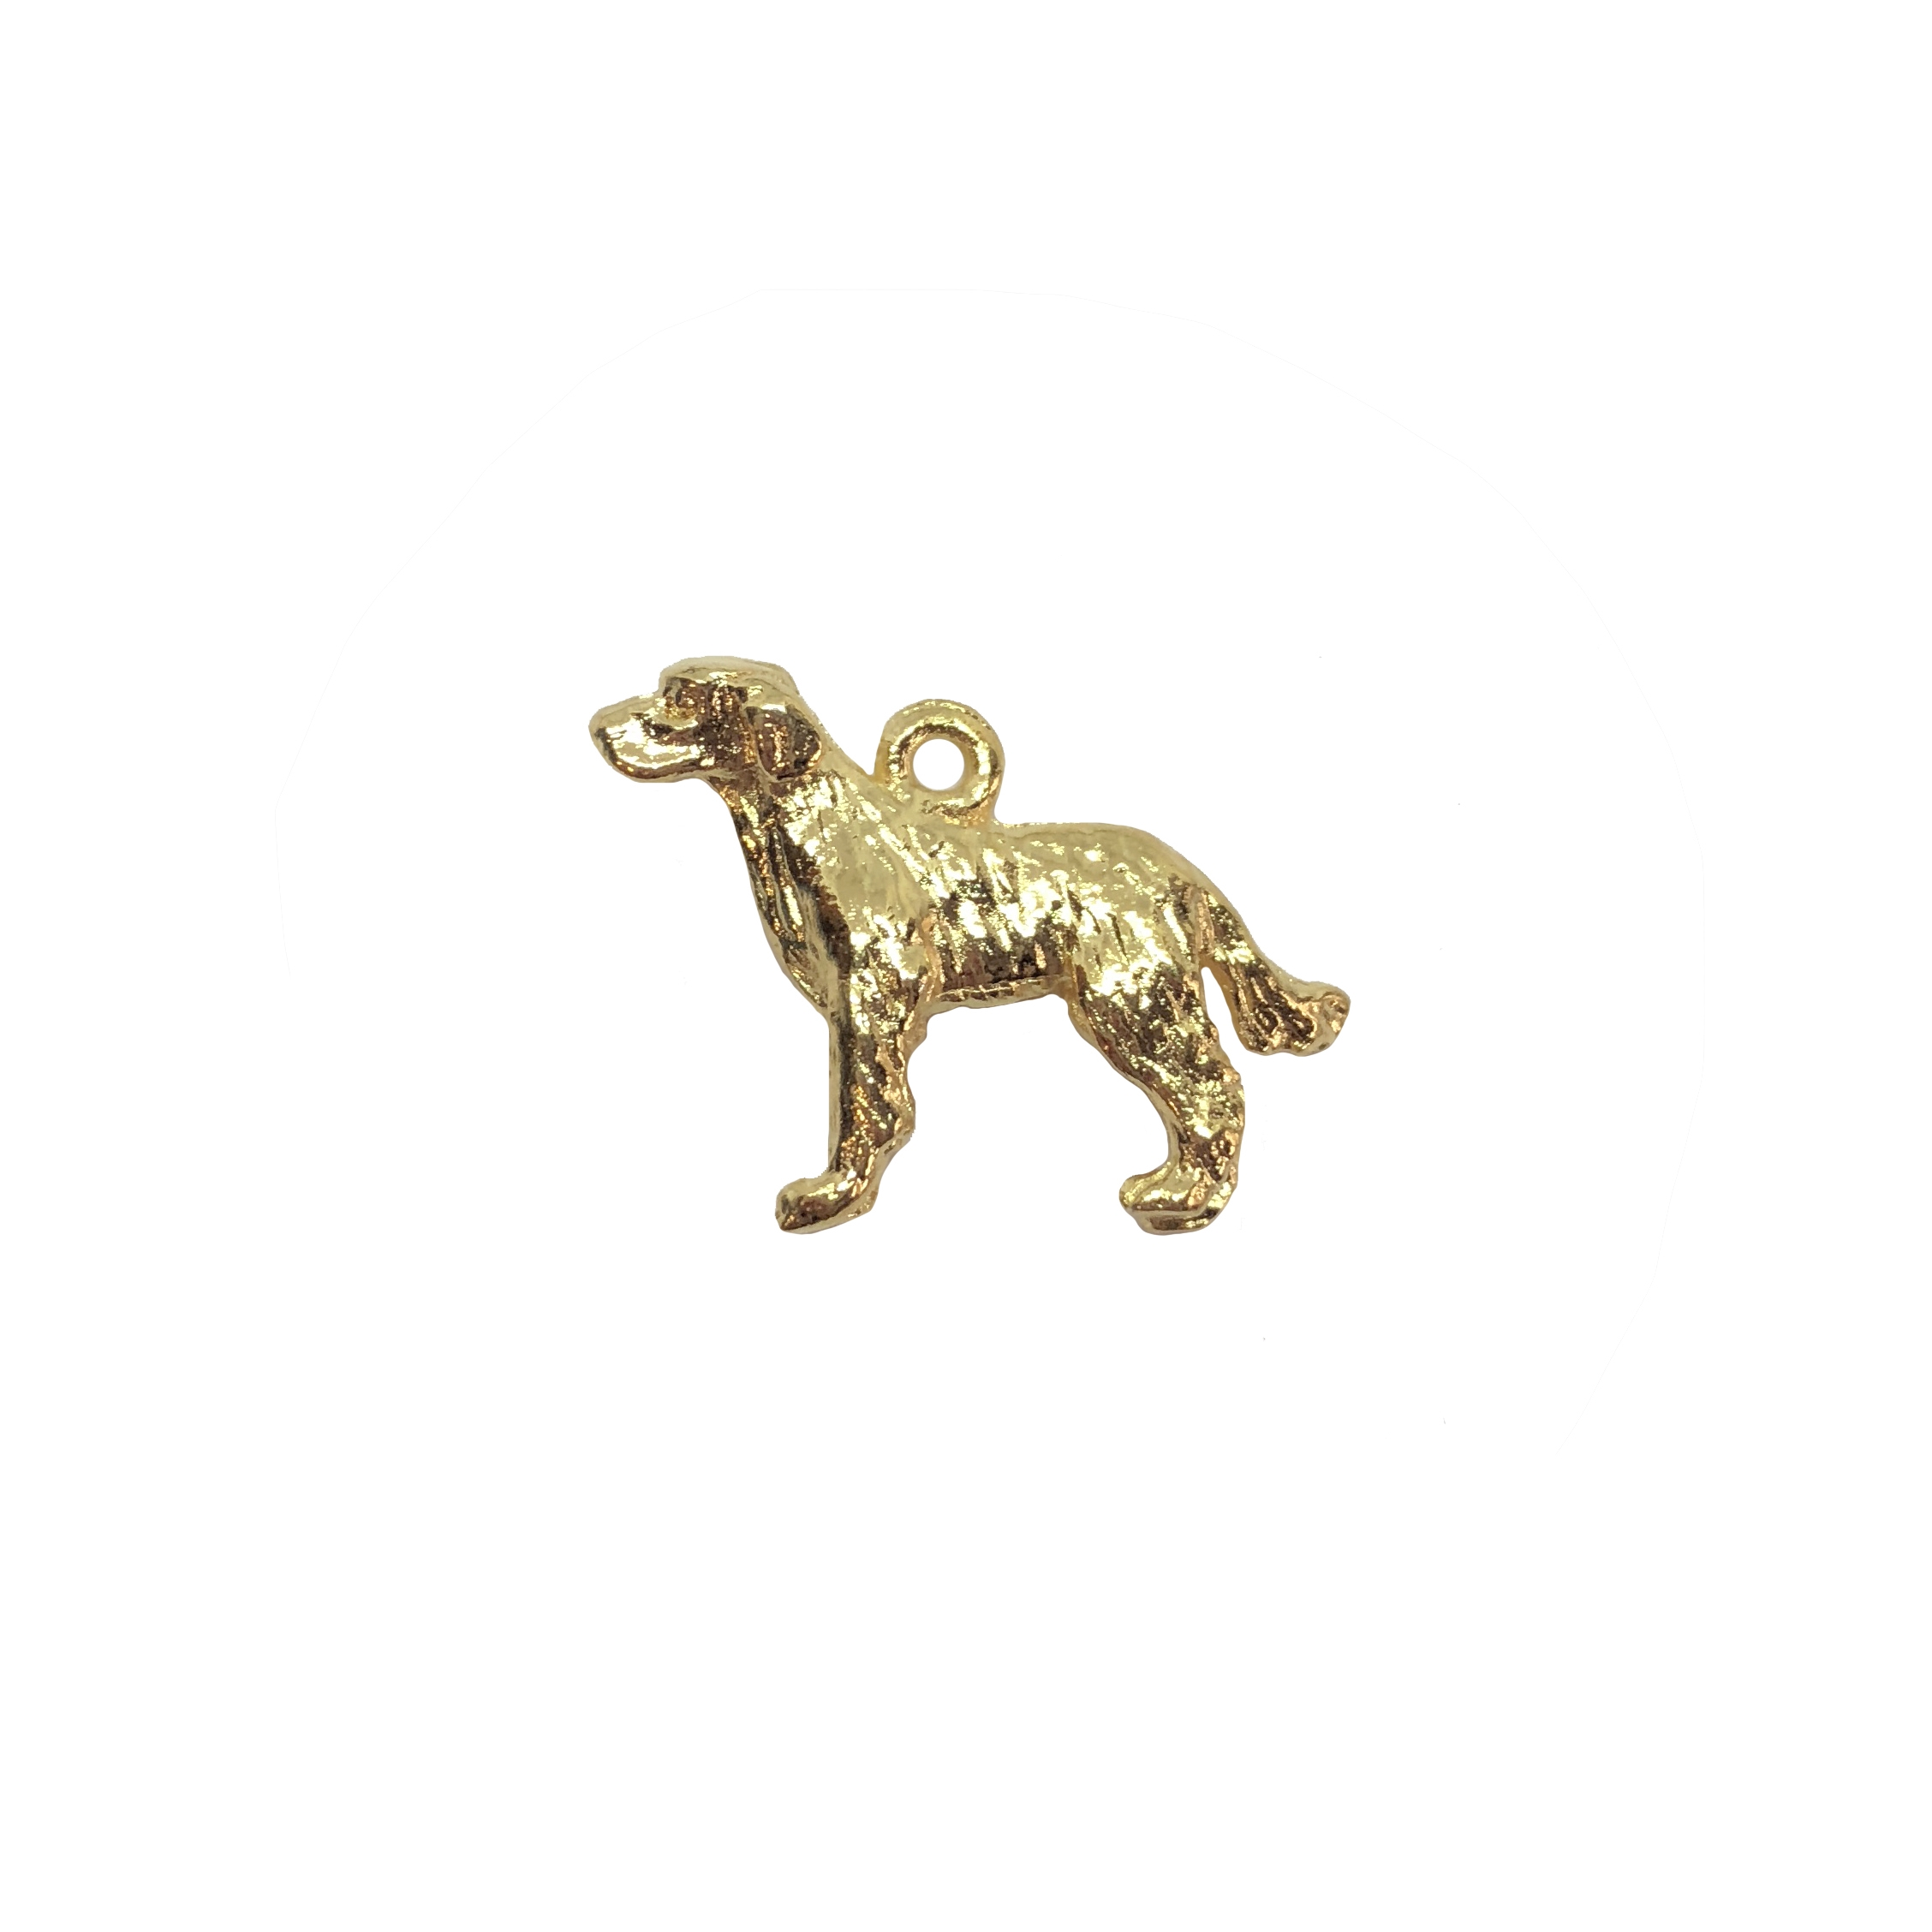 Labrador retriever charm, 22K gold finish pewter, B'sue by 1928, jewelry charm, dog, dog charm, charm, Labrador, gold, lead free pewter, gold finish, US made, designer jewelry, vintage supplies, B'sue Boutiques, 15x20mm, 08533